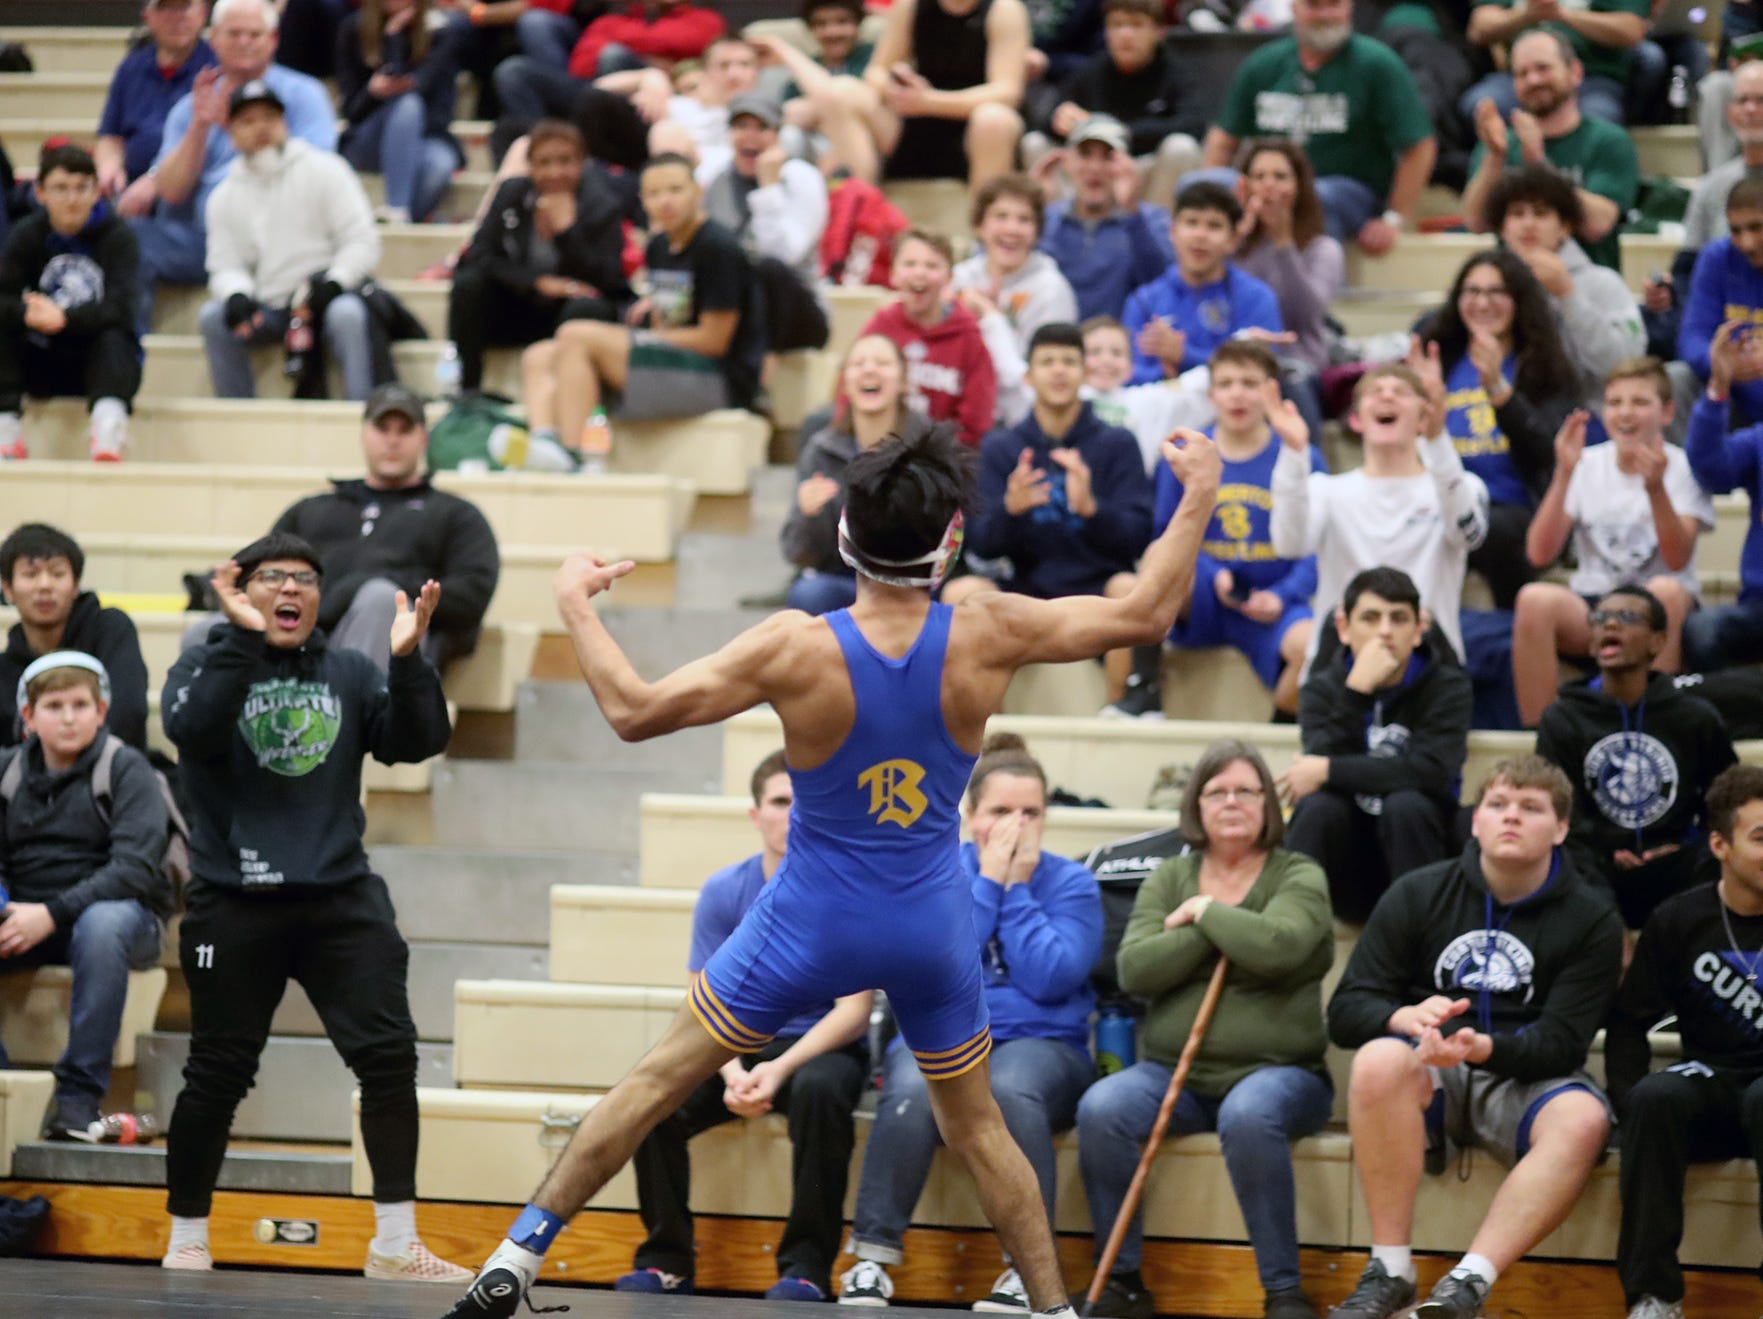 Estan Wakonabo of Bremerton plays the crowd after defeating Josia OÕ Bannon of Curtis in a 132 pound match  at the CK Matman Wrestling Tournament at Central Kitsap High School on Saturday, January, 12, 2019.